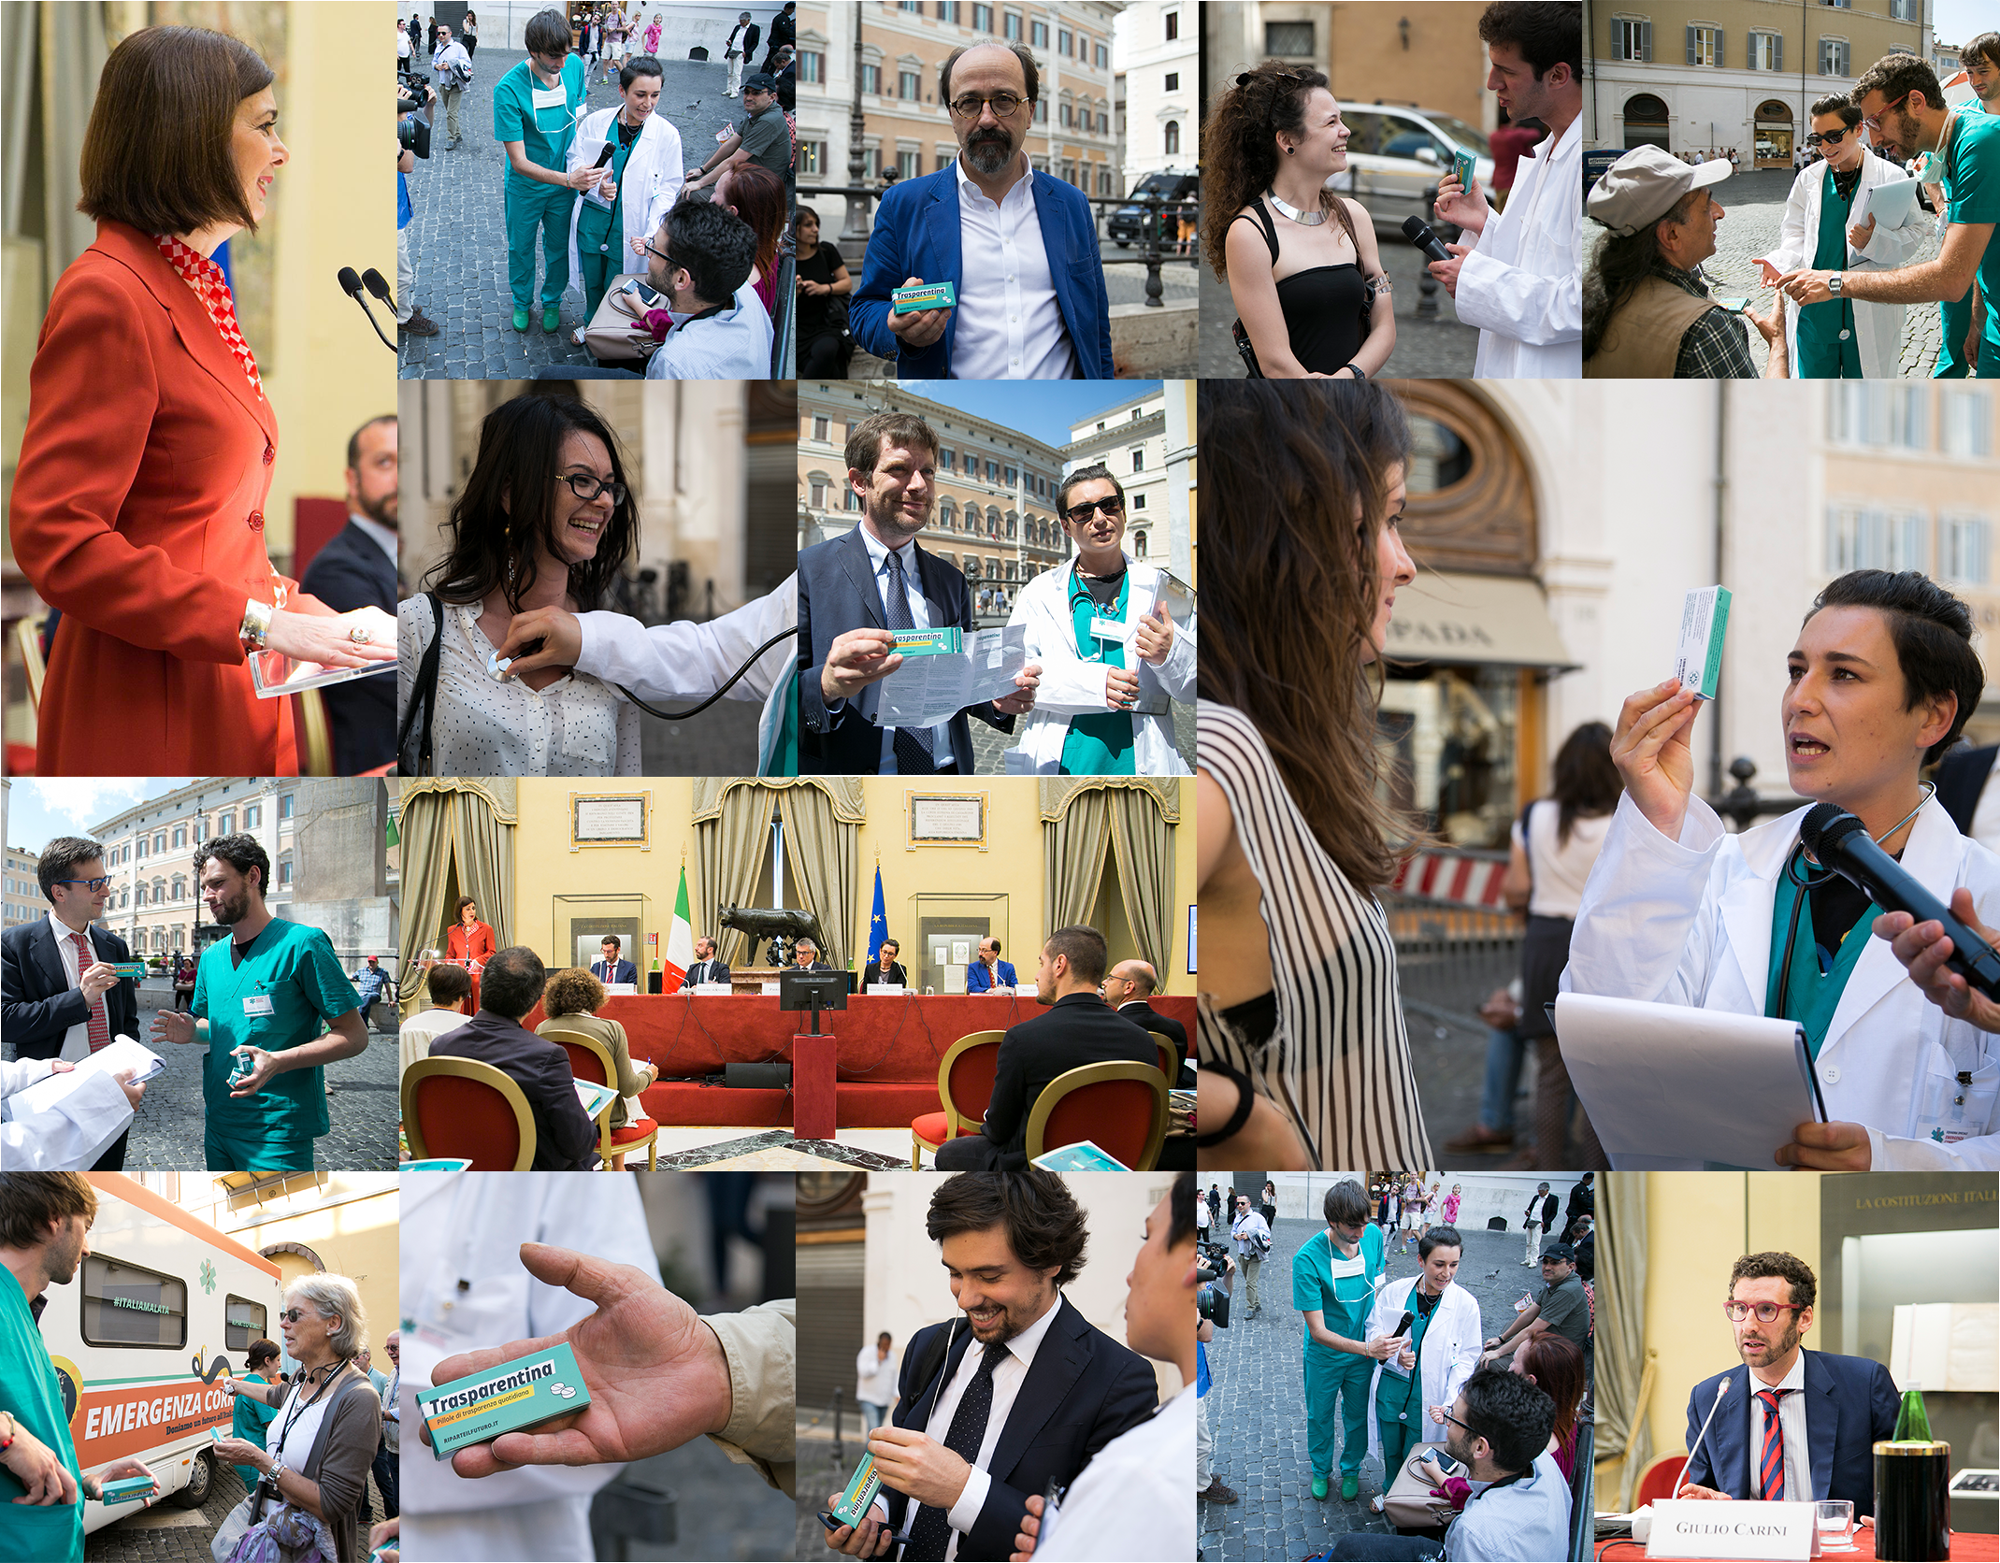 image with some photographs of the event